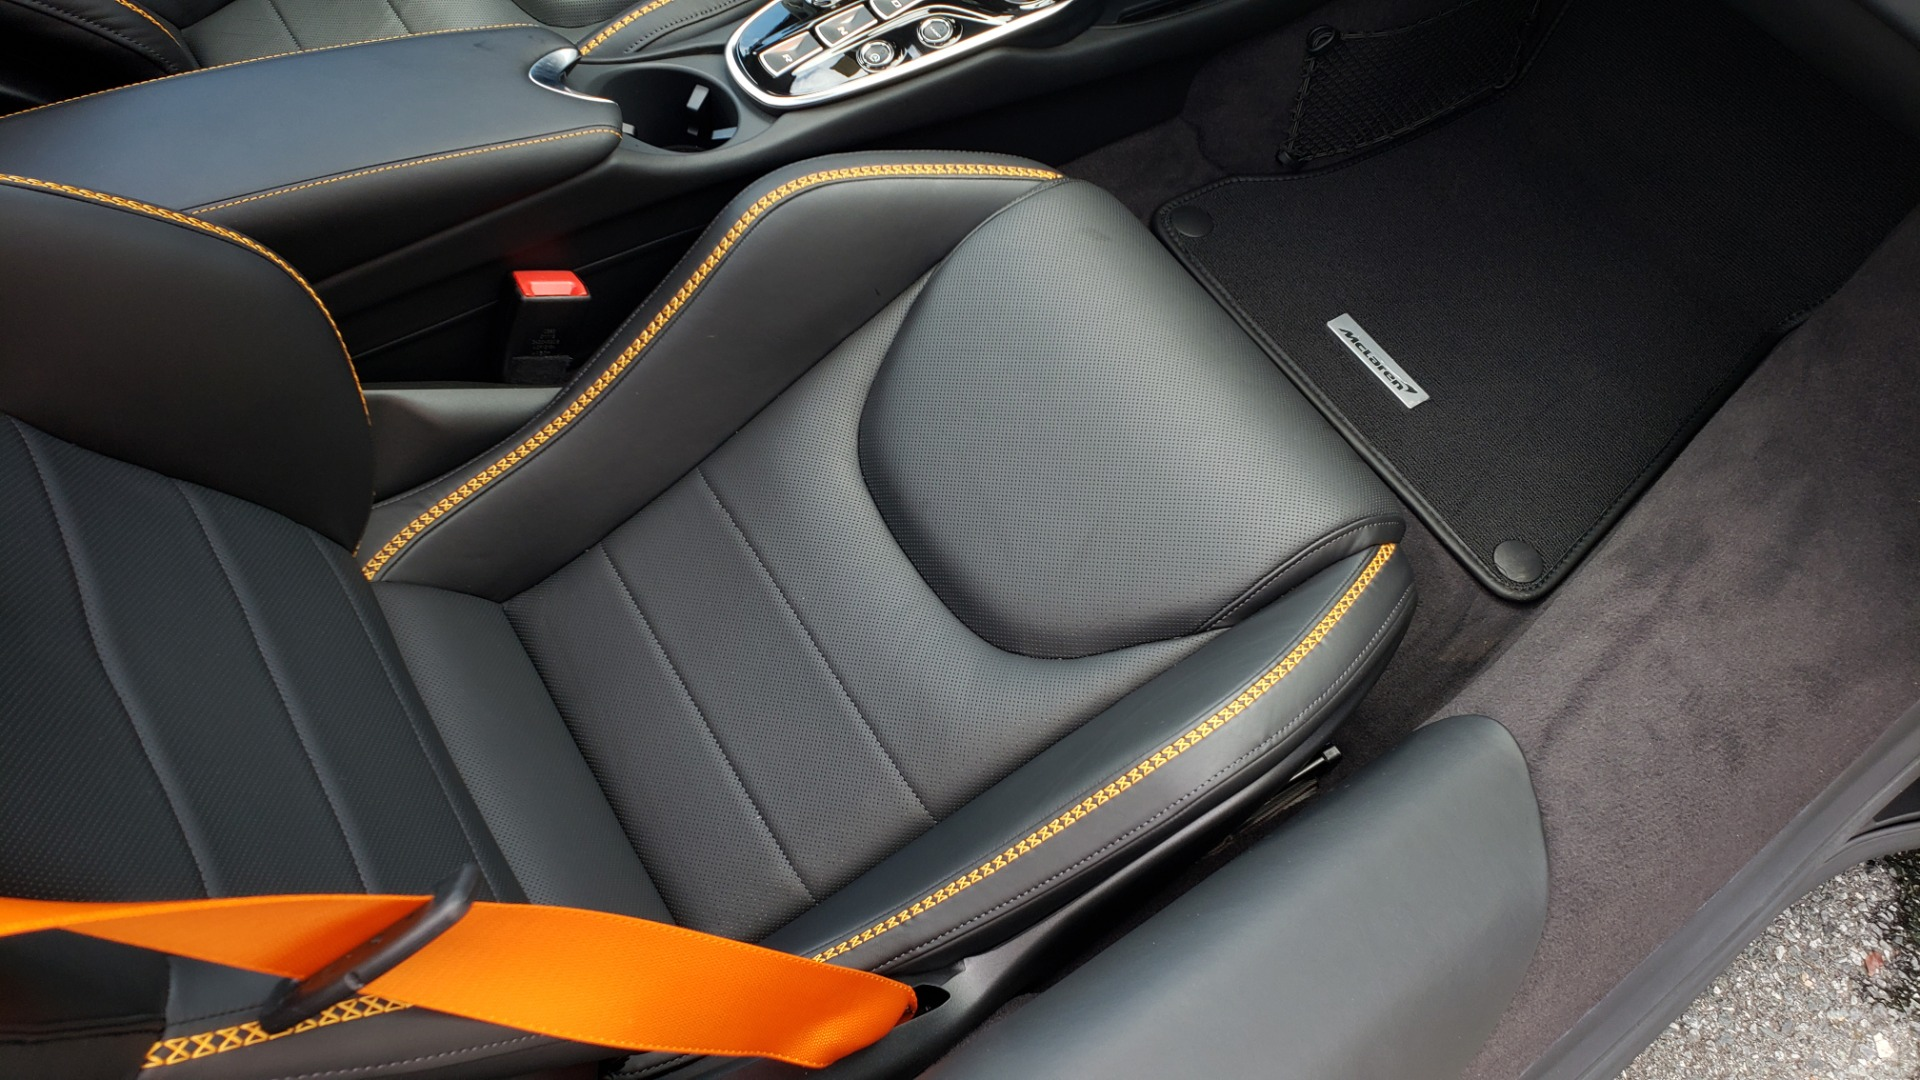 Used 2020 McLaren GT COUPE / 4.0L V8 - 612HP / RWD / NAV / REARVIEW / 20IN BLACK WHEELS for sale $244,000 at Formula Imports in Charlotte NC 28227 57